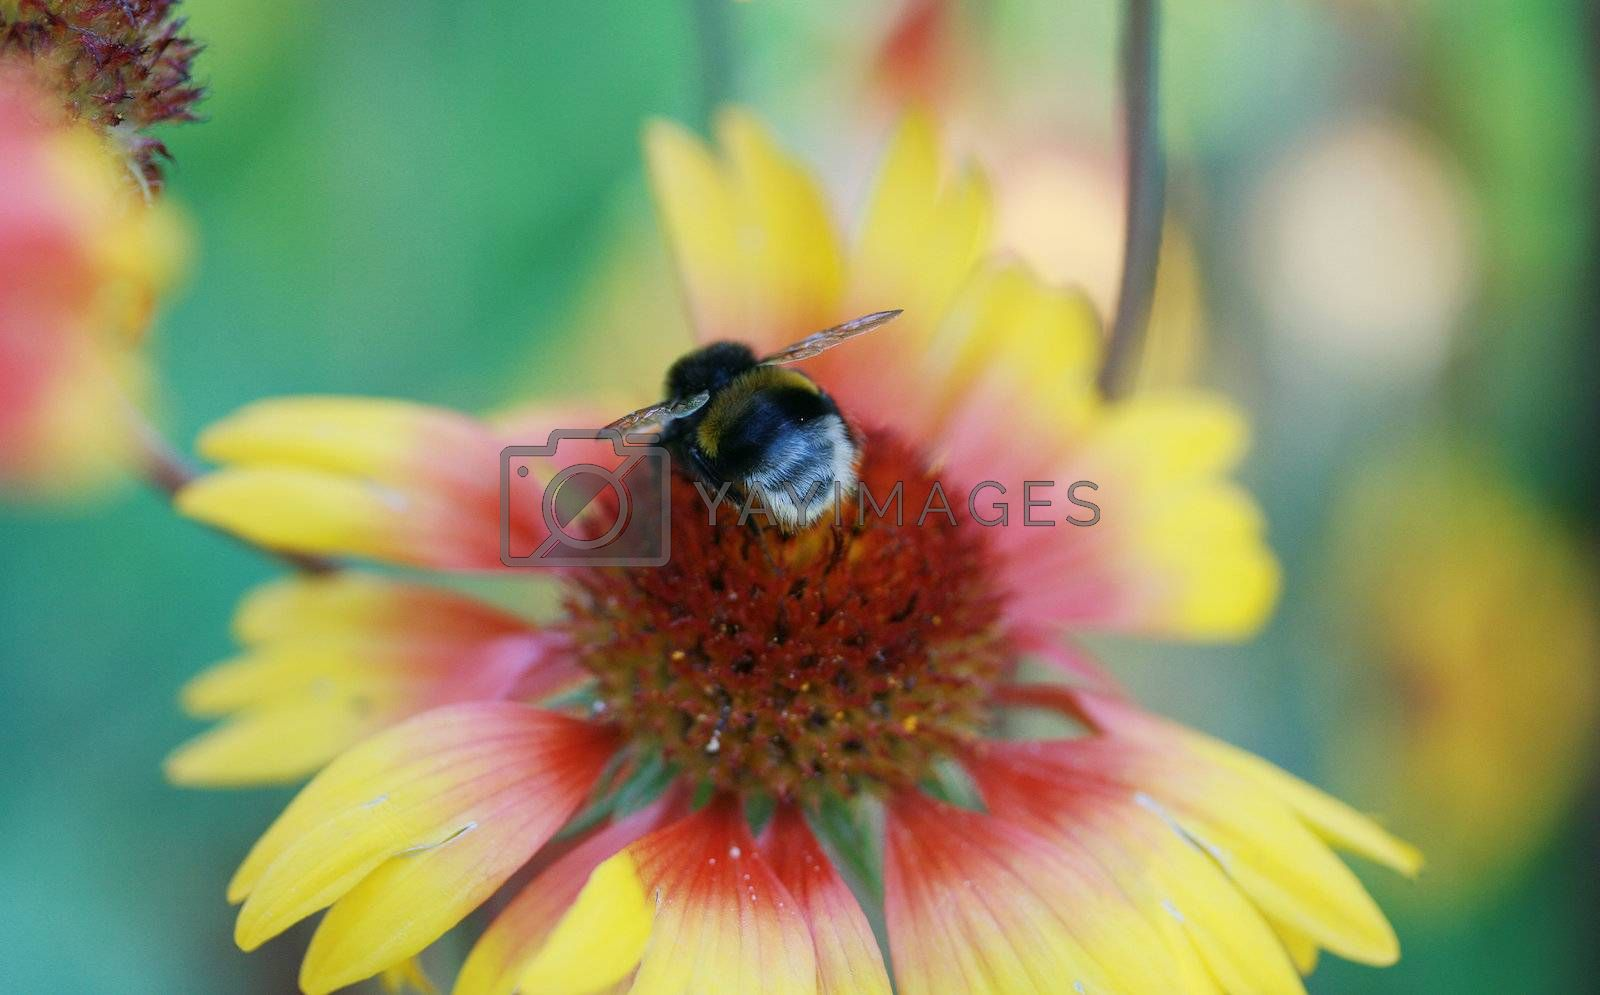 The bee pollinates the big beautiful flower